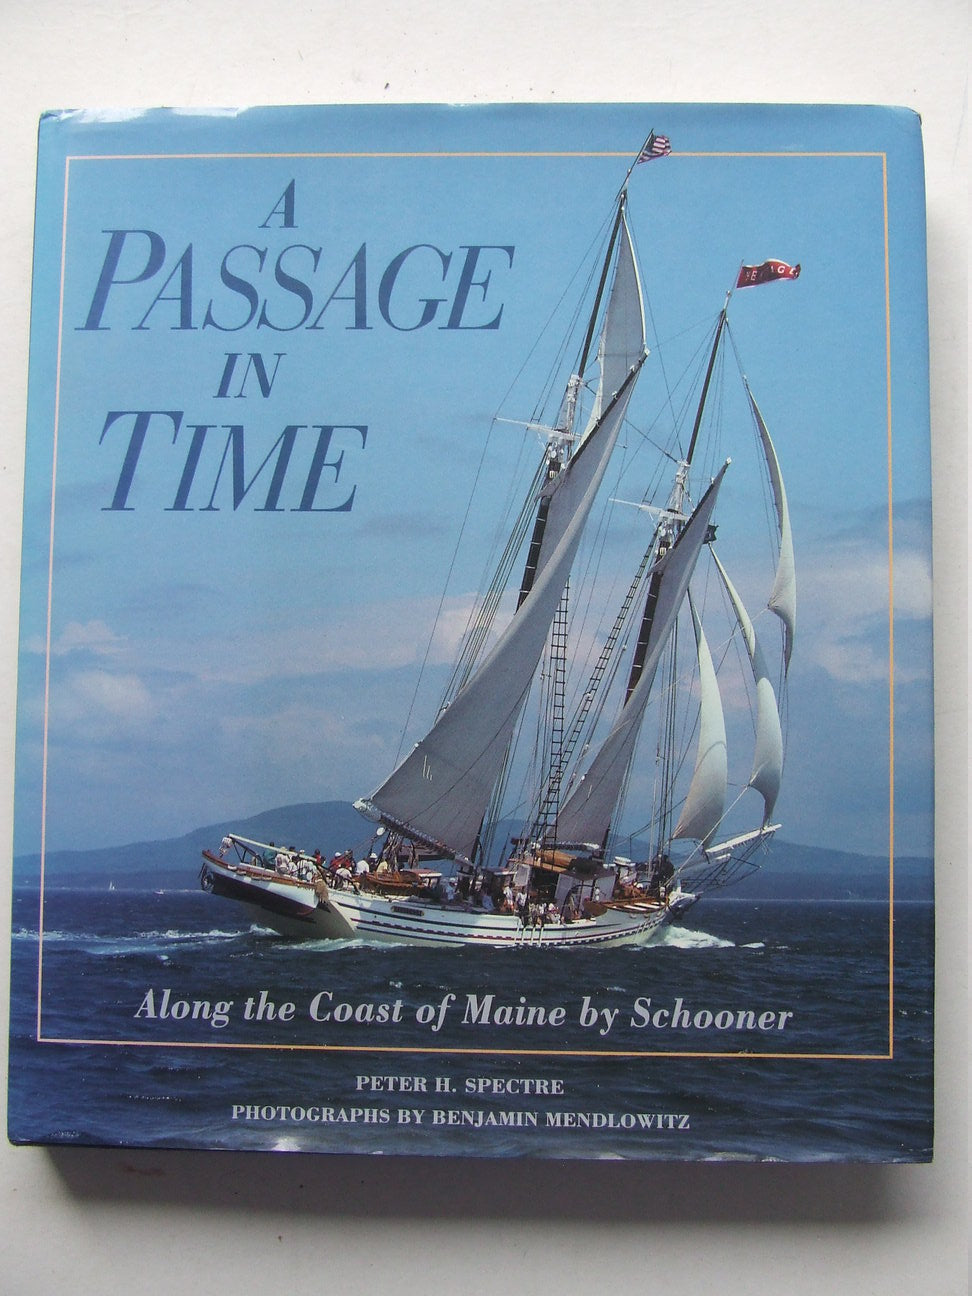 A Passage in Time, along the coast of Maine by schooner